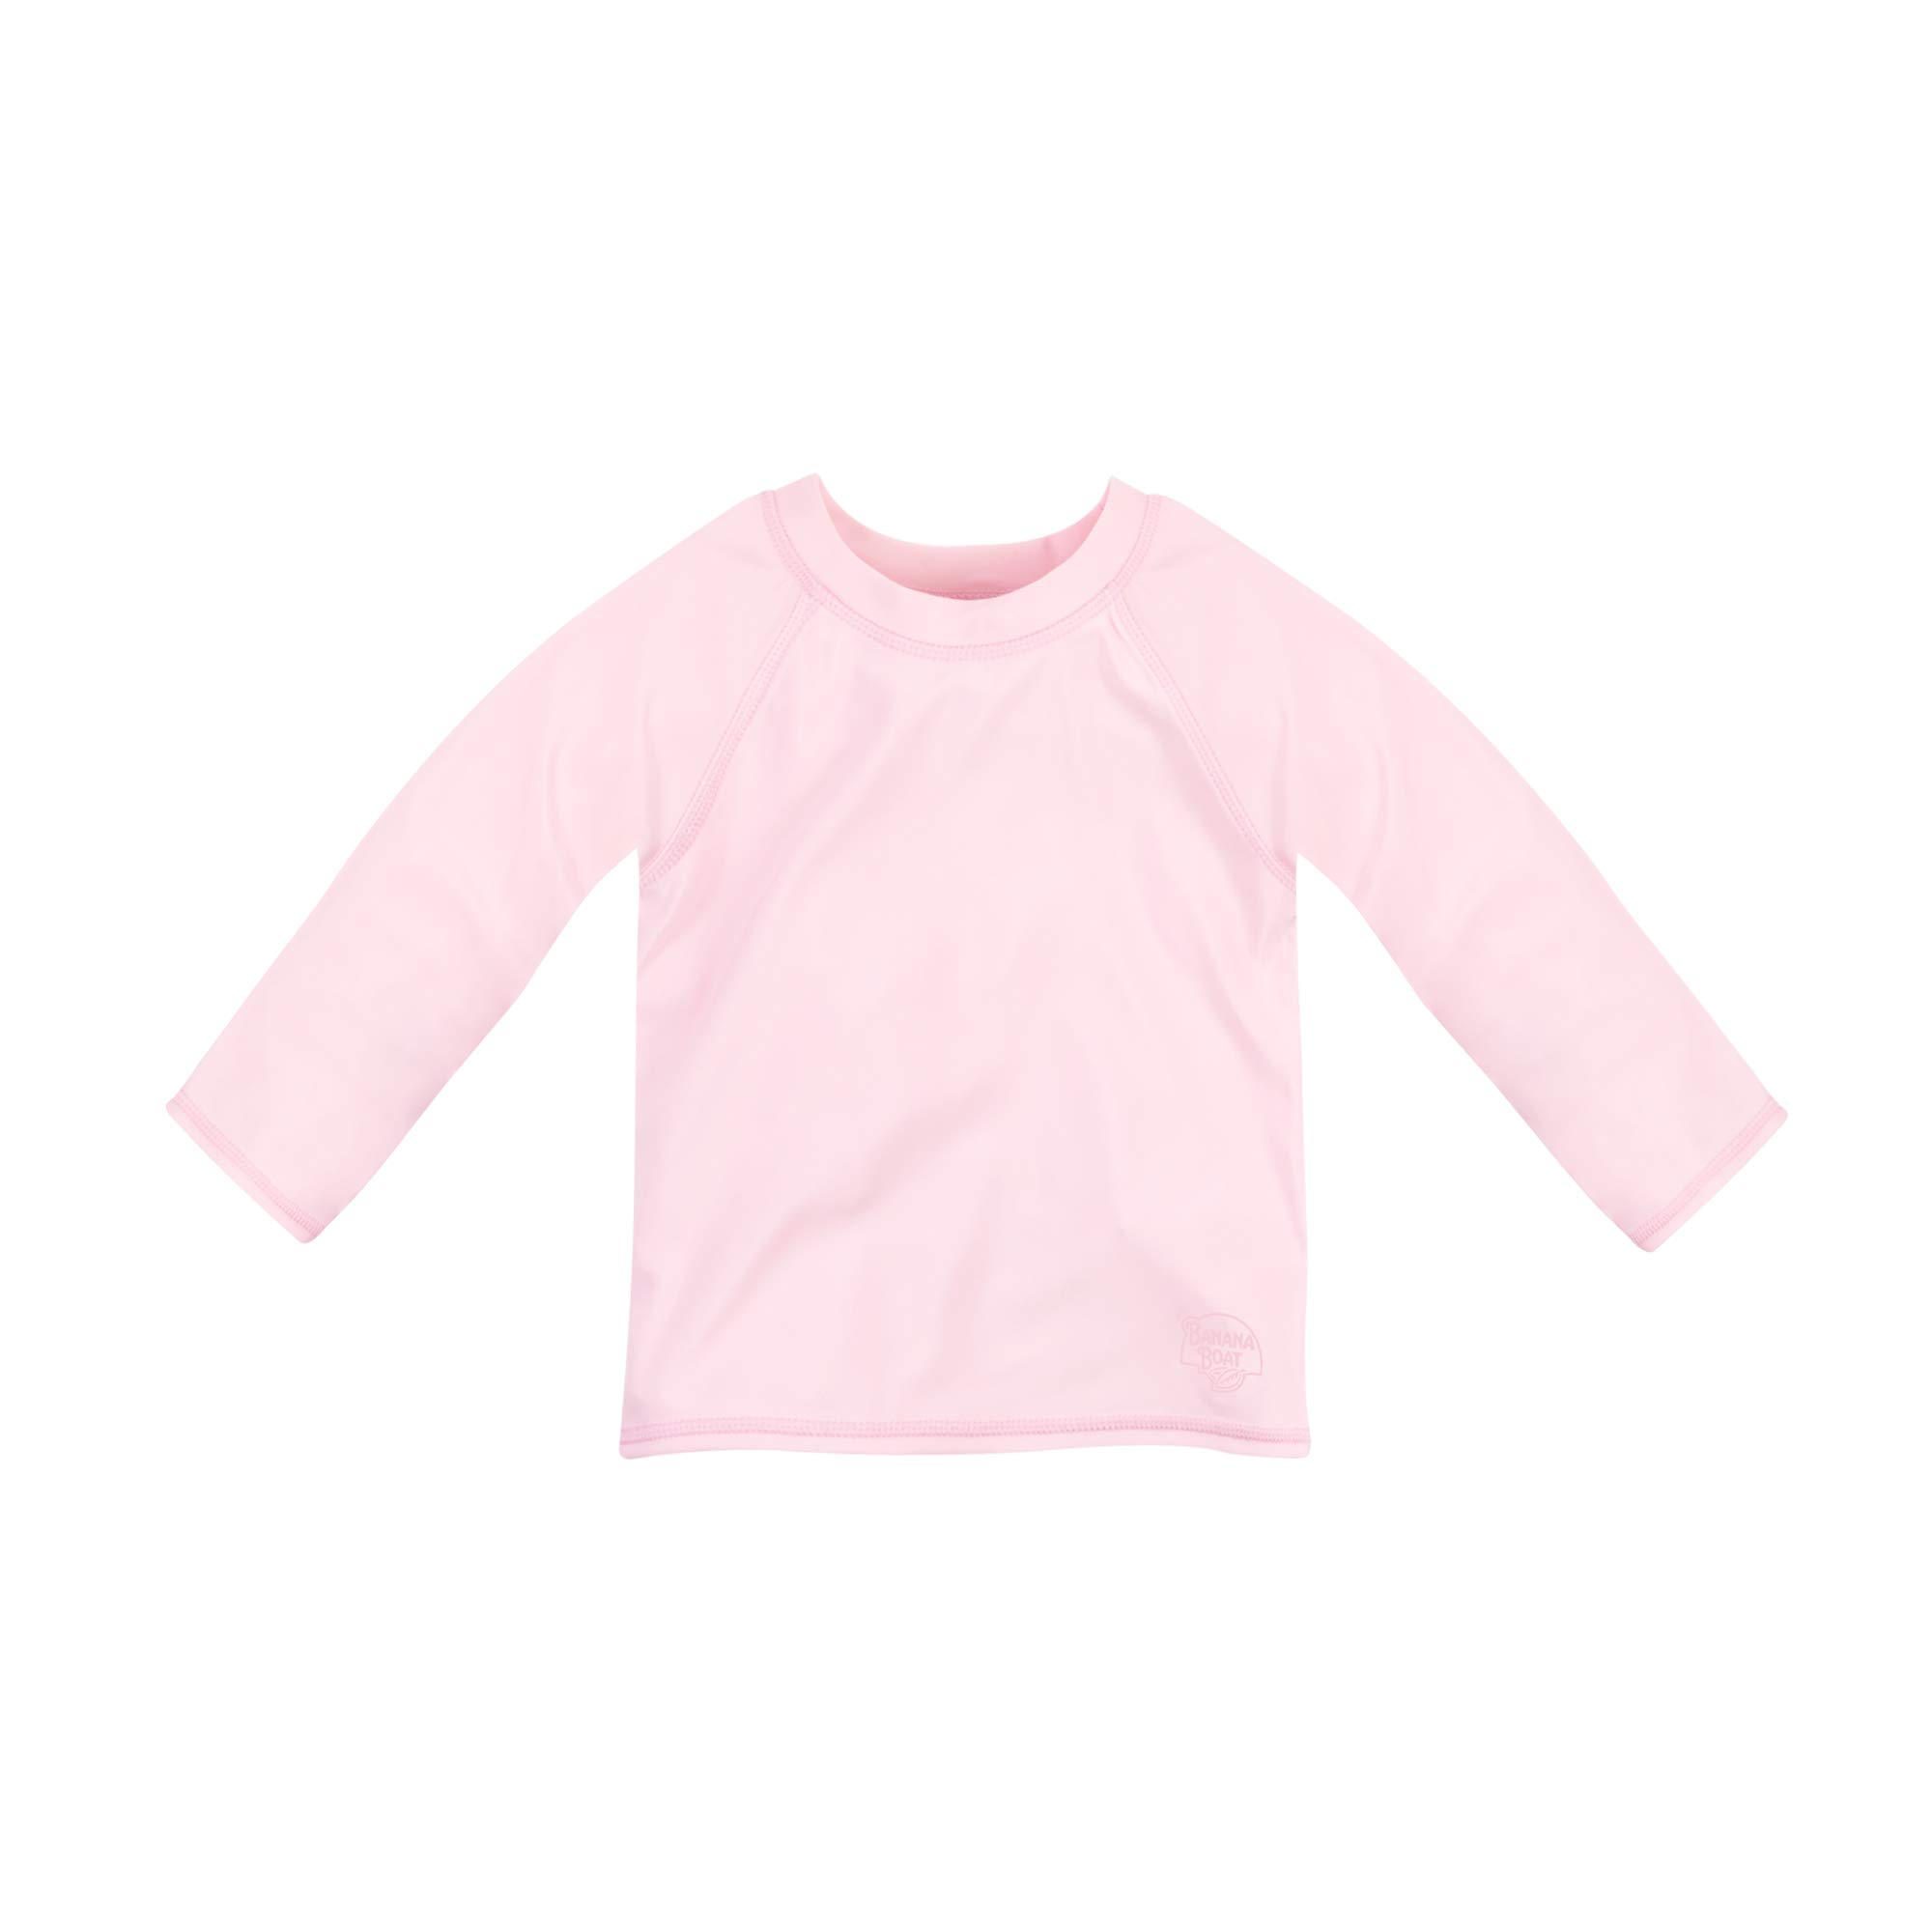 Banana Boat Girls and Boys Wetsuit with Rash Guard and Long Sleeves Pink